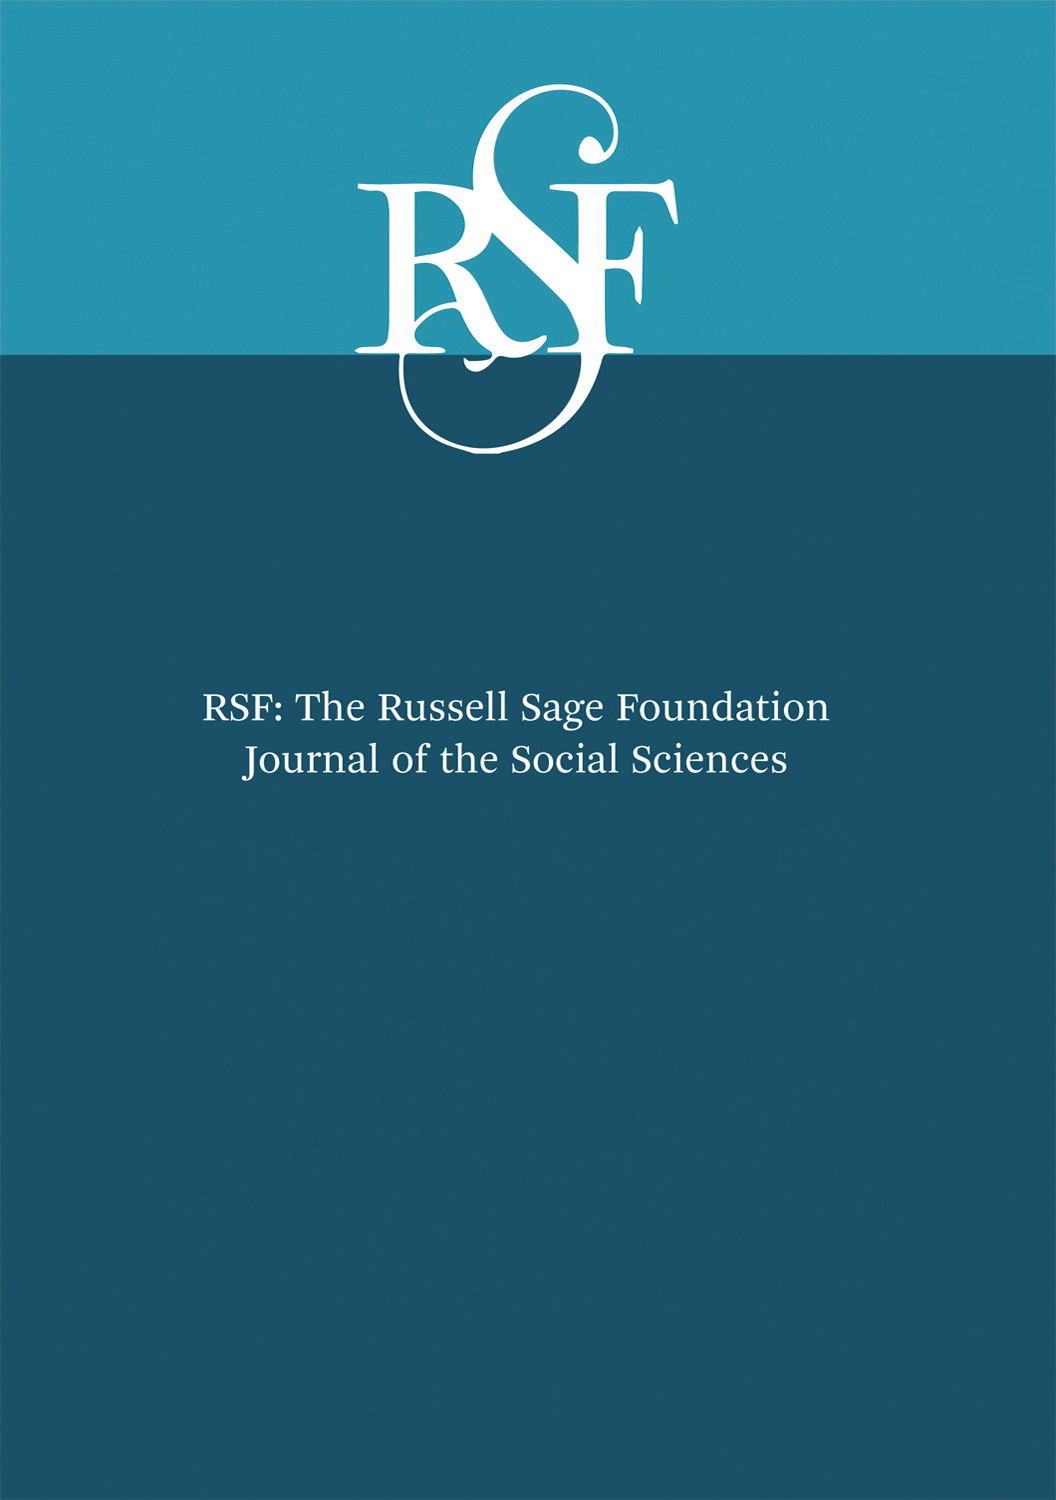 Publications | RSF